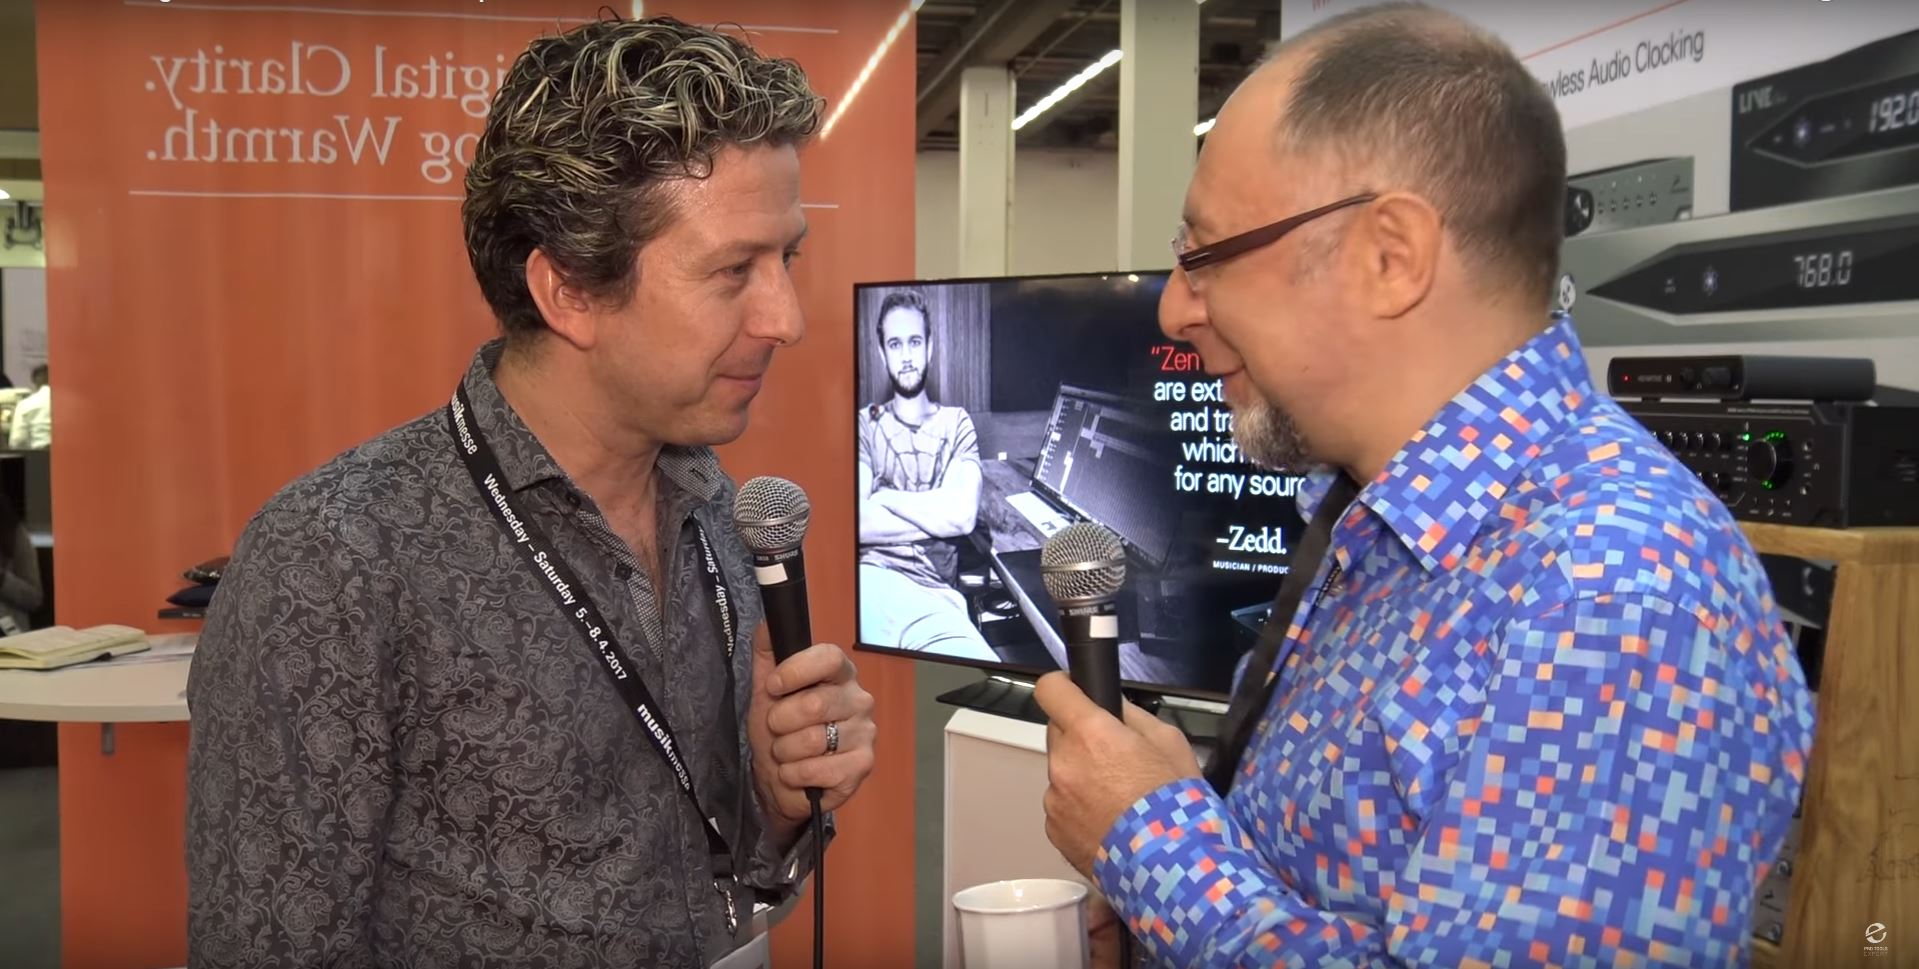 James Ivy from Pro Tools Expert talks with Antelope Audio's owner and Chief Designer, Igor Levin